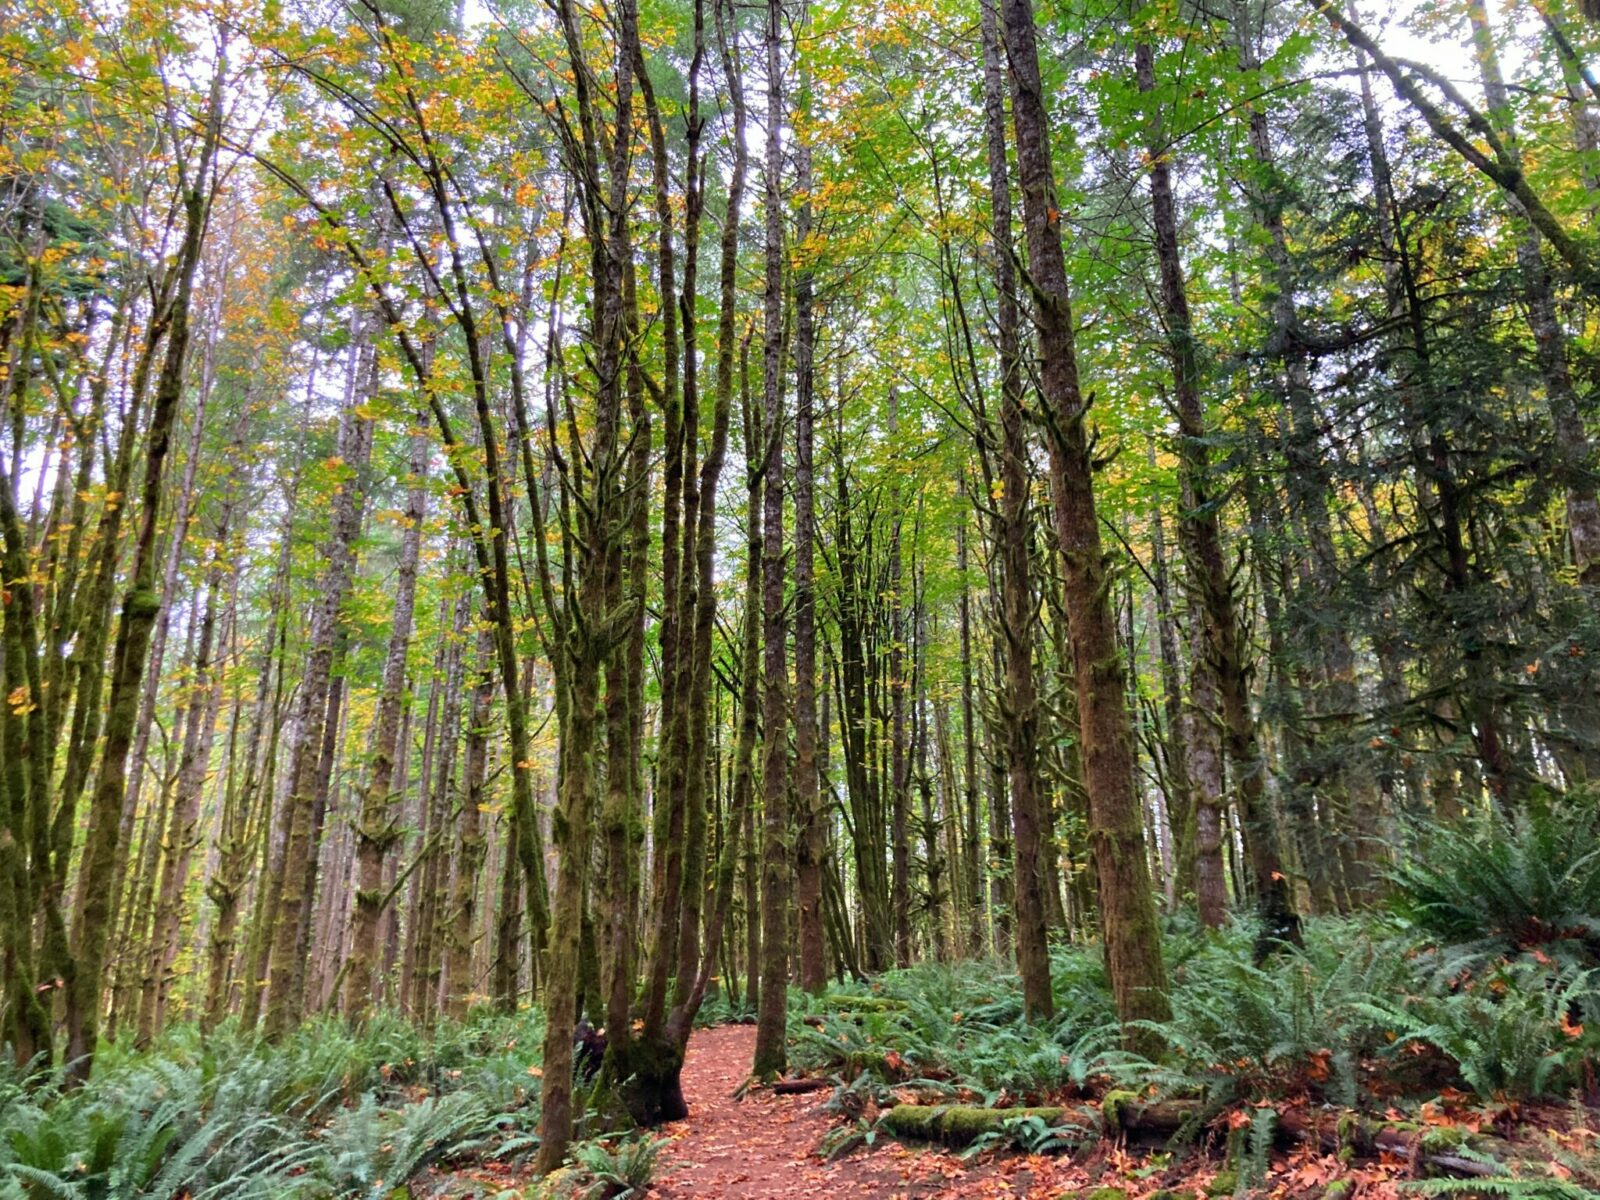 A forest with thick ferns around the forest floor and the lime kiln trail going through the forest